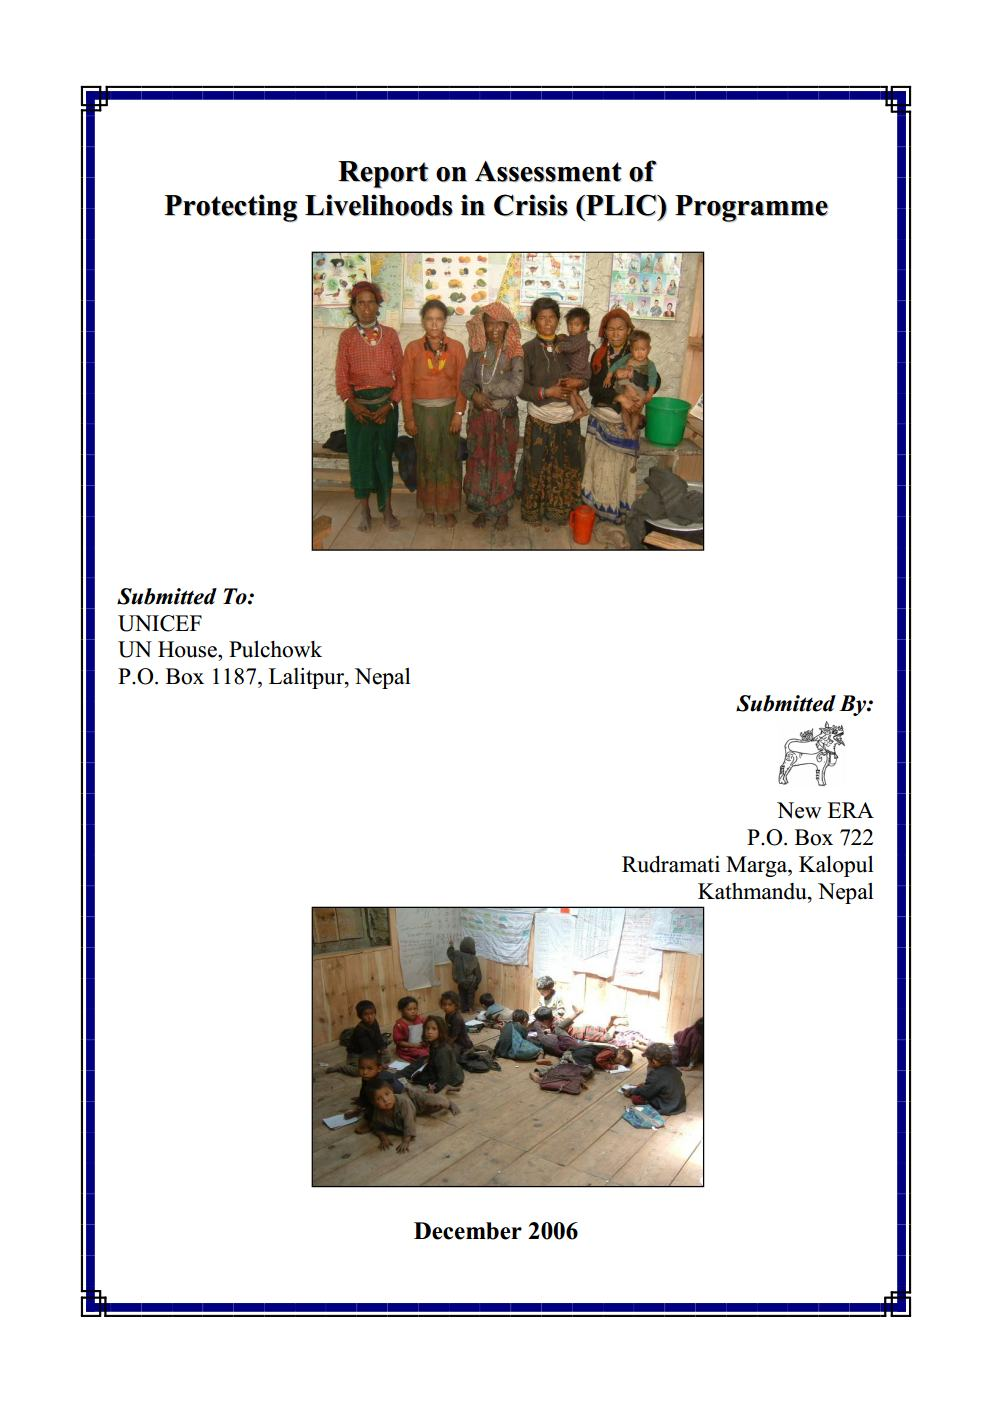 Report on Assessment of Protecting Livelihood in Crisis (PLIC) Programme